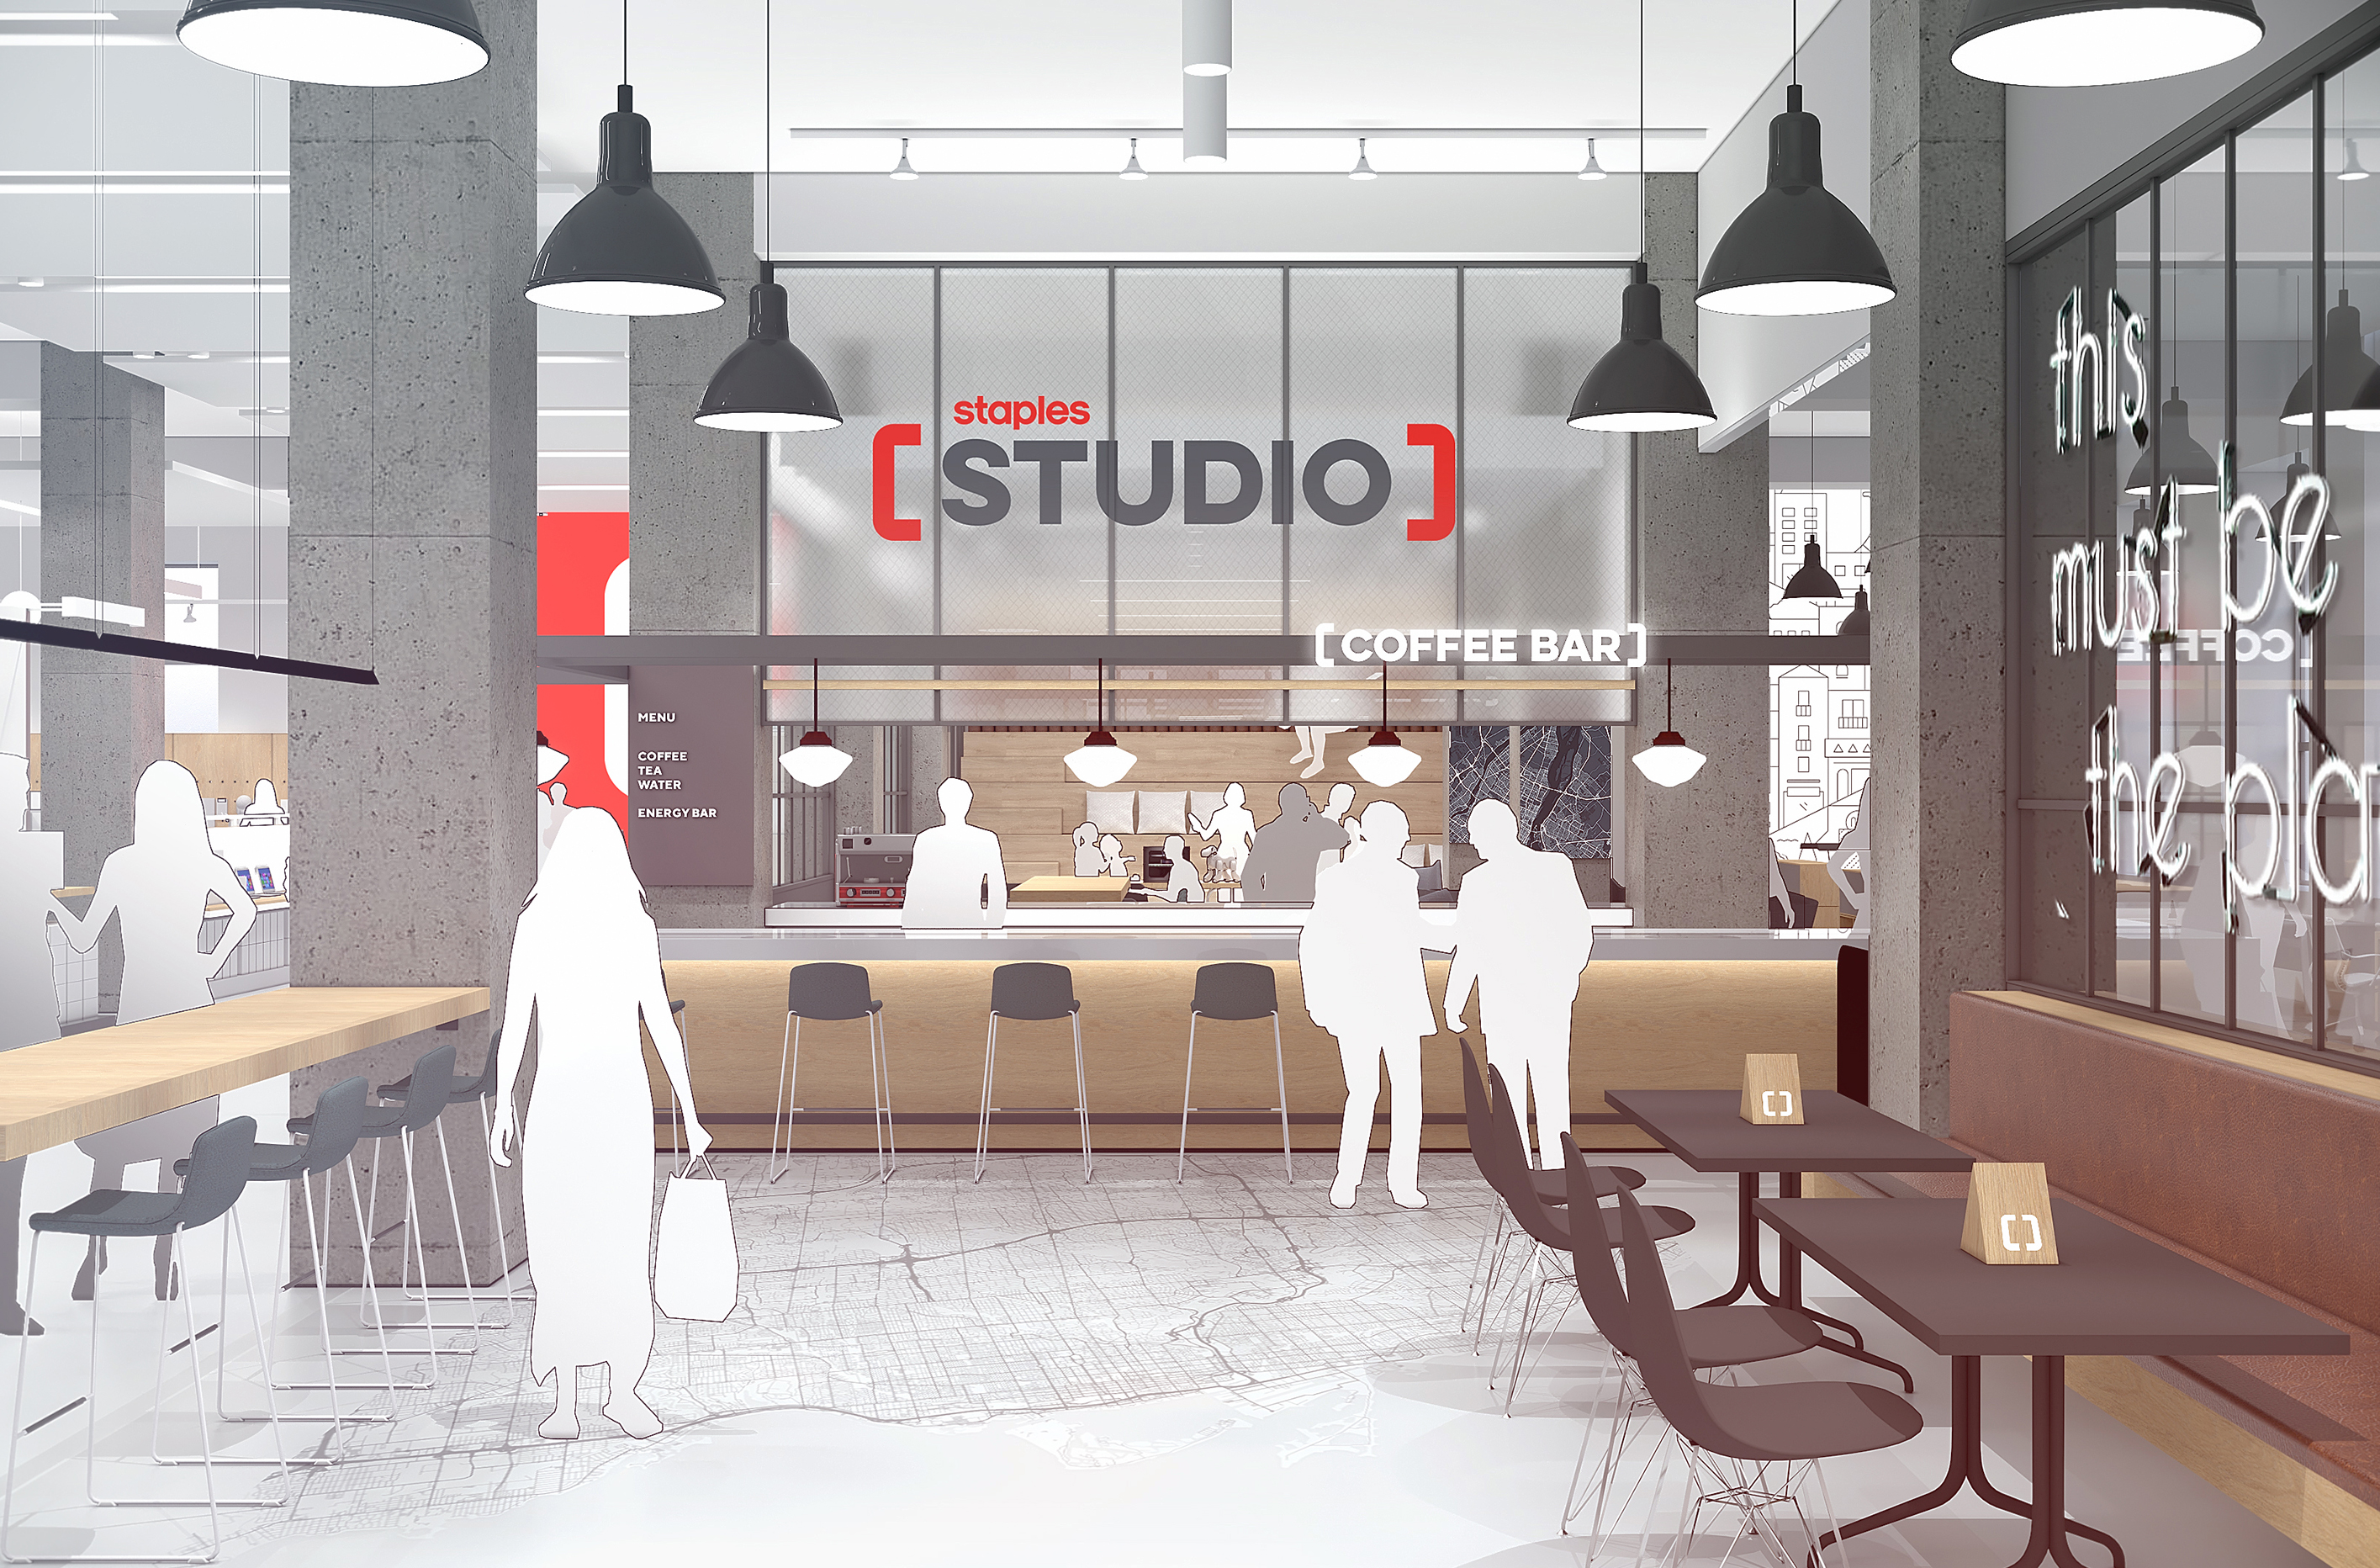 Staples Studio Cafe